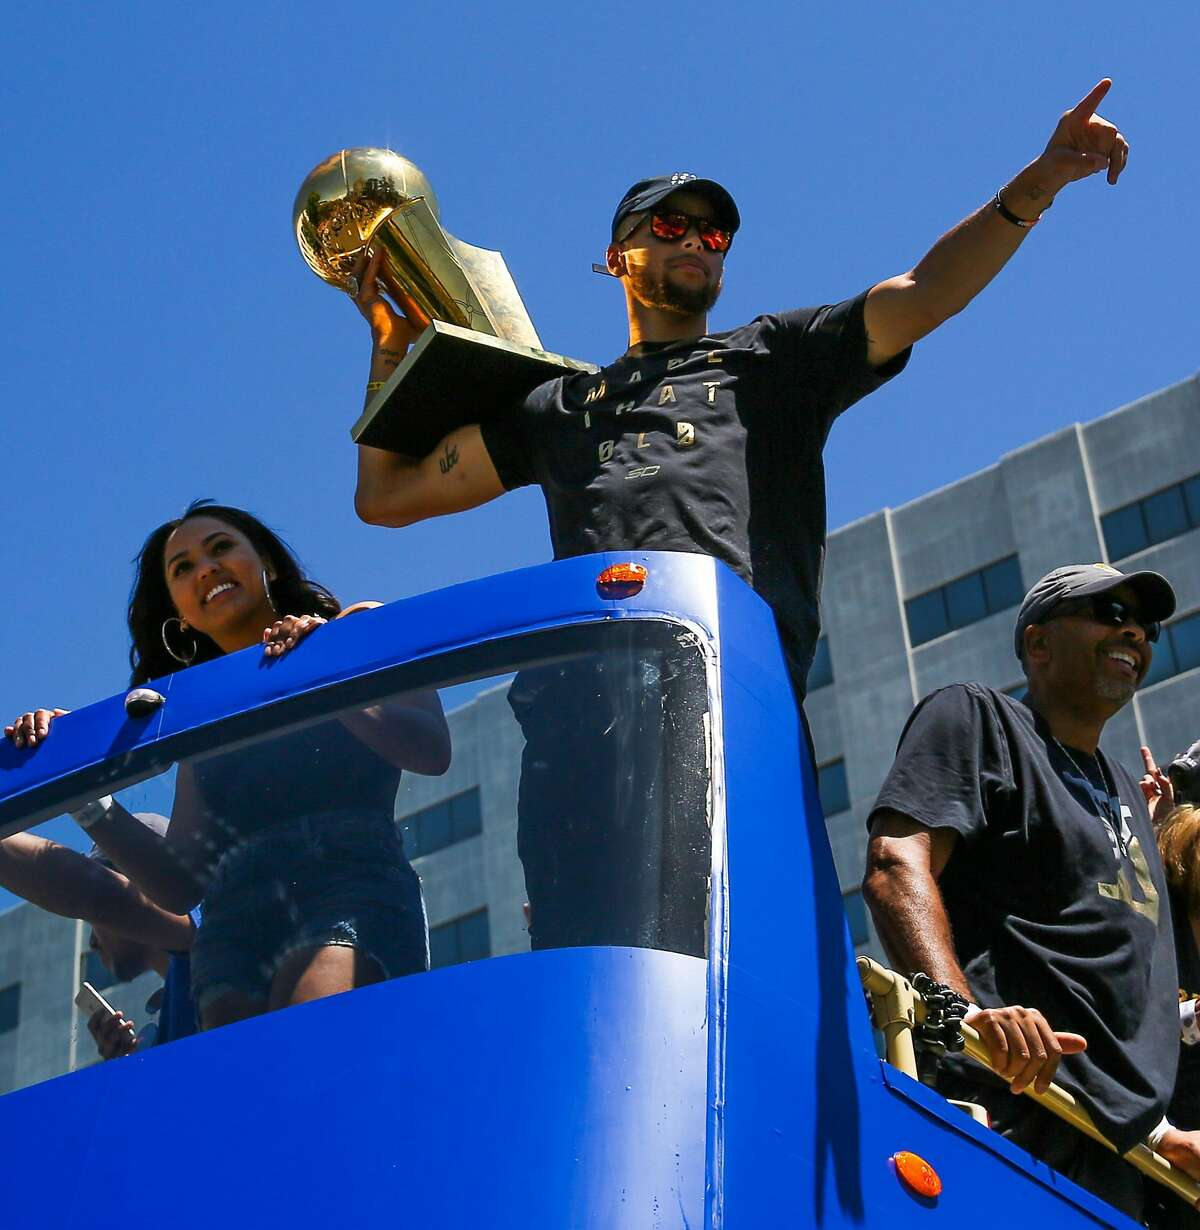 Golden State Warriors' Stephen Curry soaks up the atmosphere during the championship parade in Oakland, Calif., on Thursday, June 15, 2017.